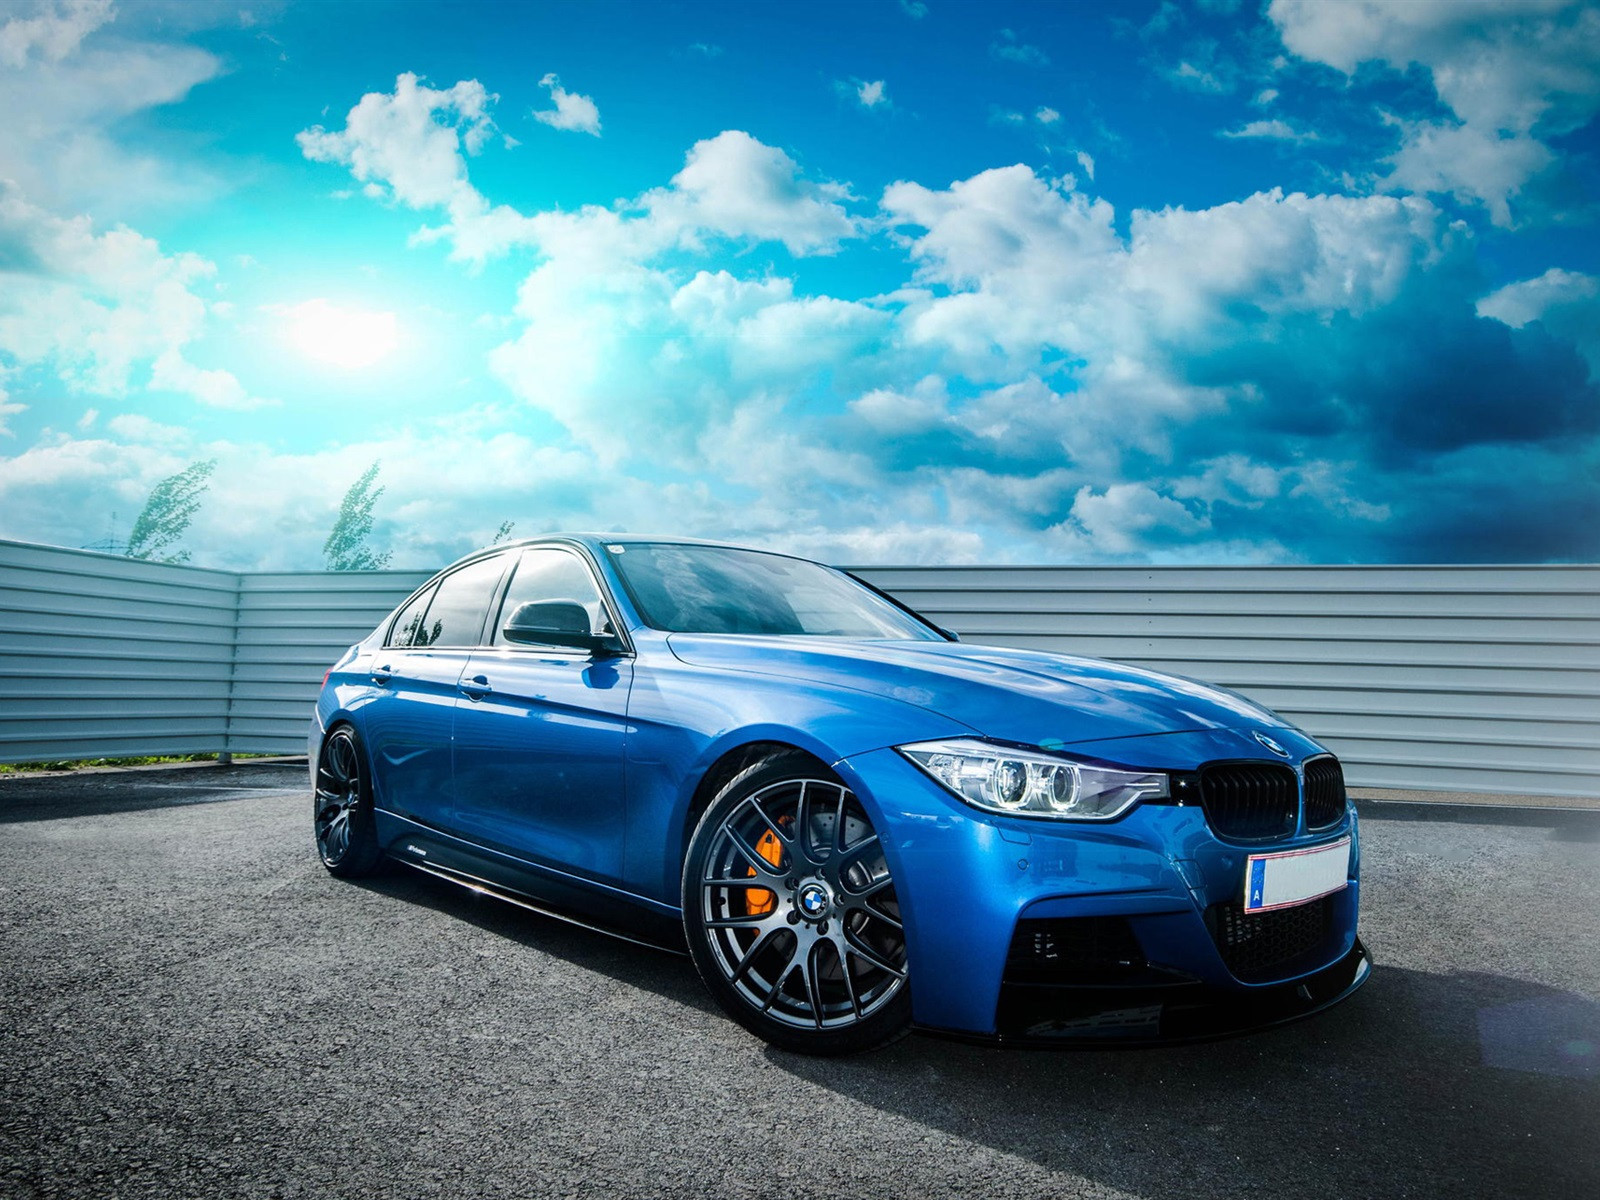 wallpaper bmw f30 335i blue car sky clouds 1920x1200 hd